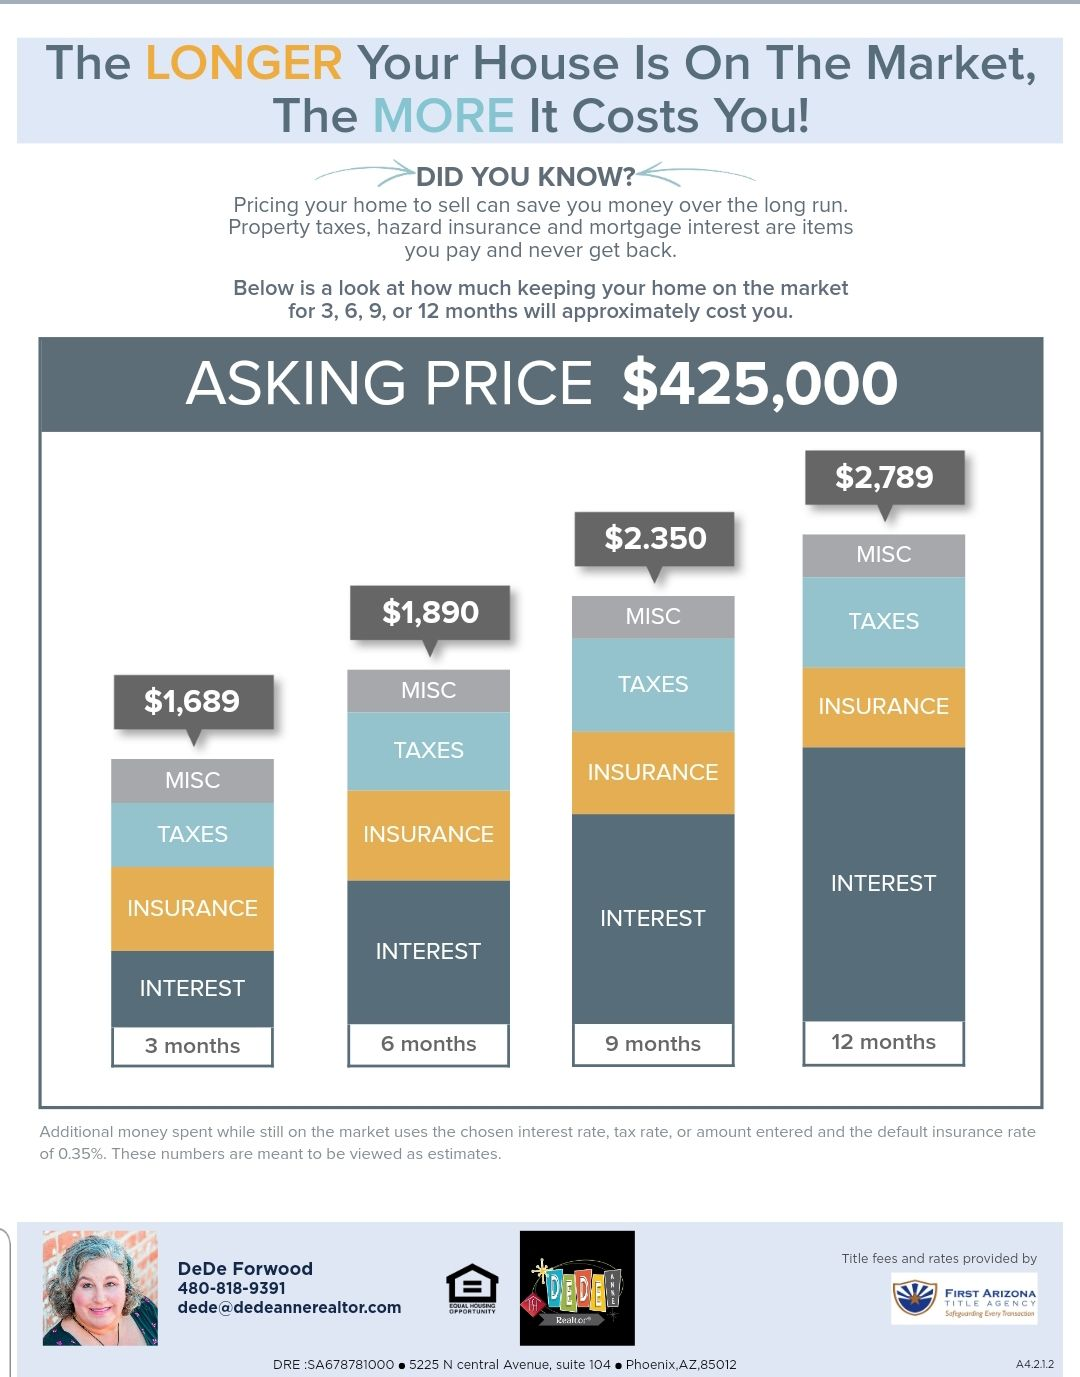 Did you know pricing your home to sell can save you money